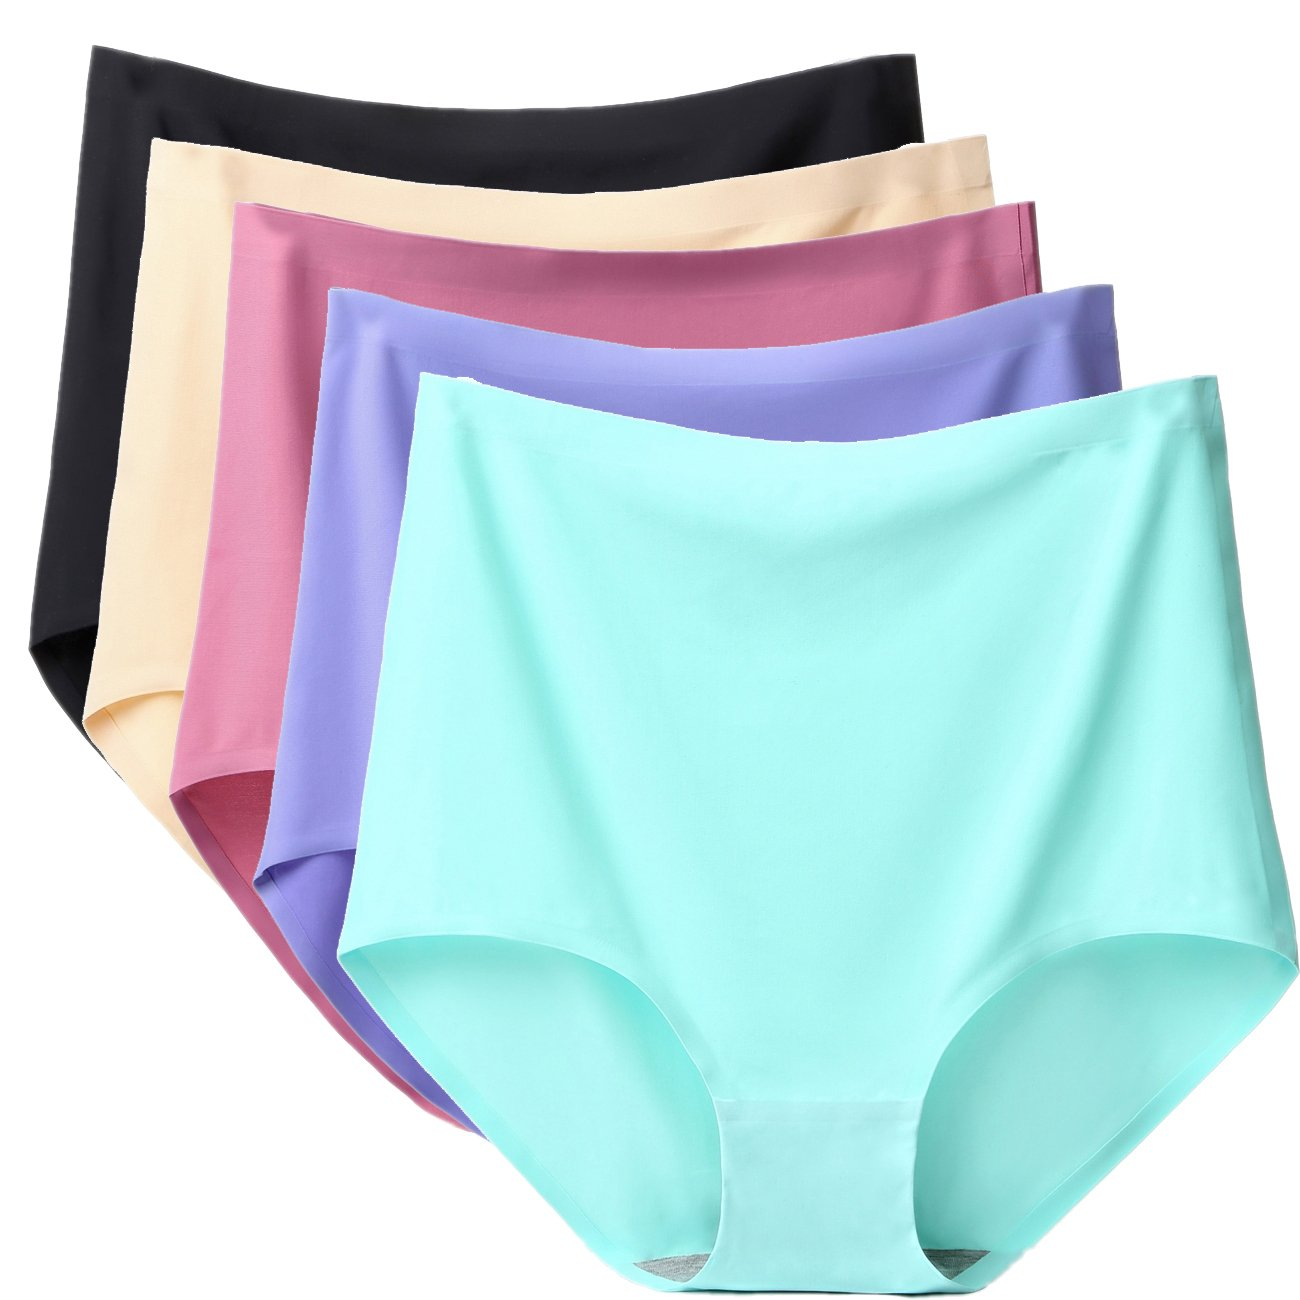 ARONAS Women's Seamless Underwear 3/5 Pack Mid High Waist Plus Size Comfortable Briefs Hipster Panties